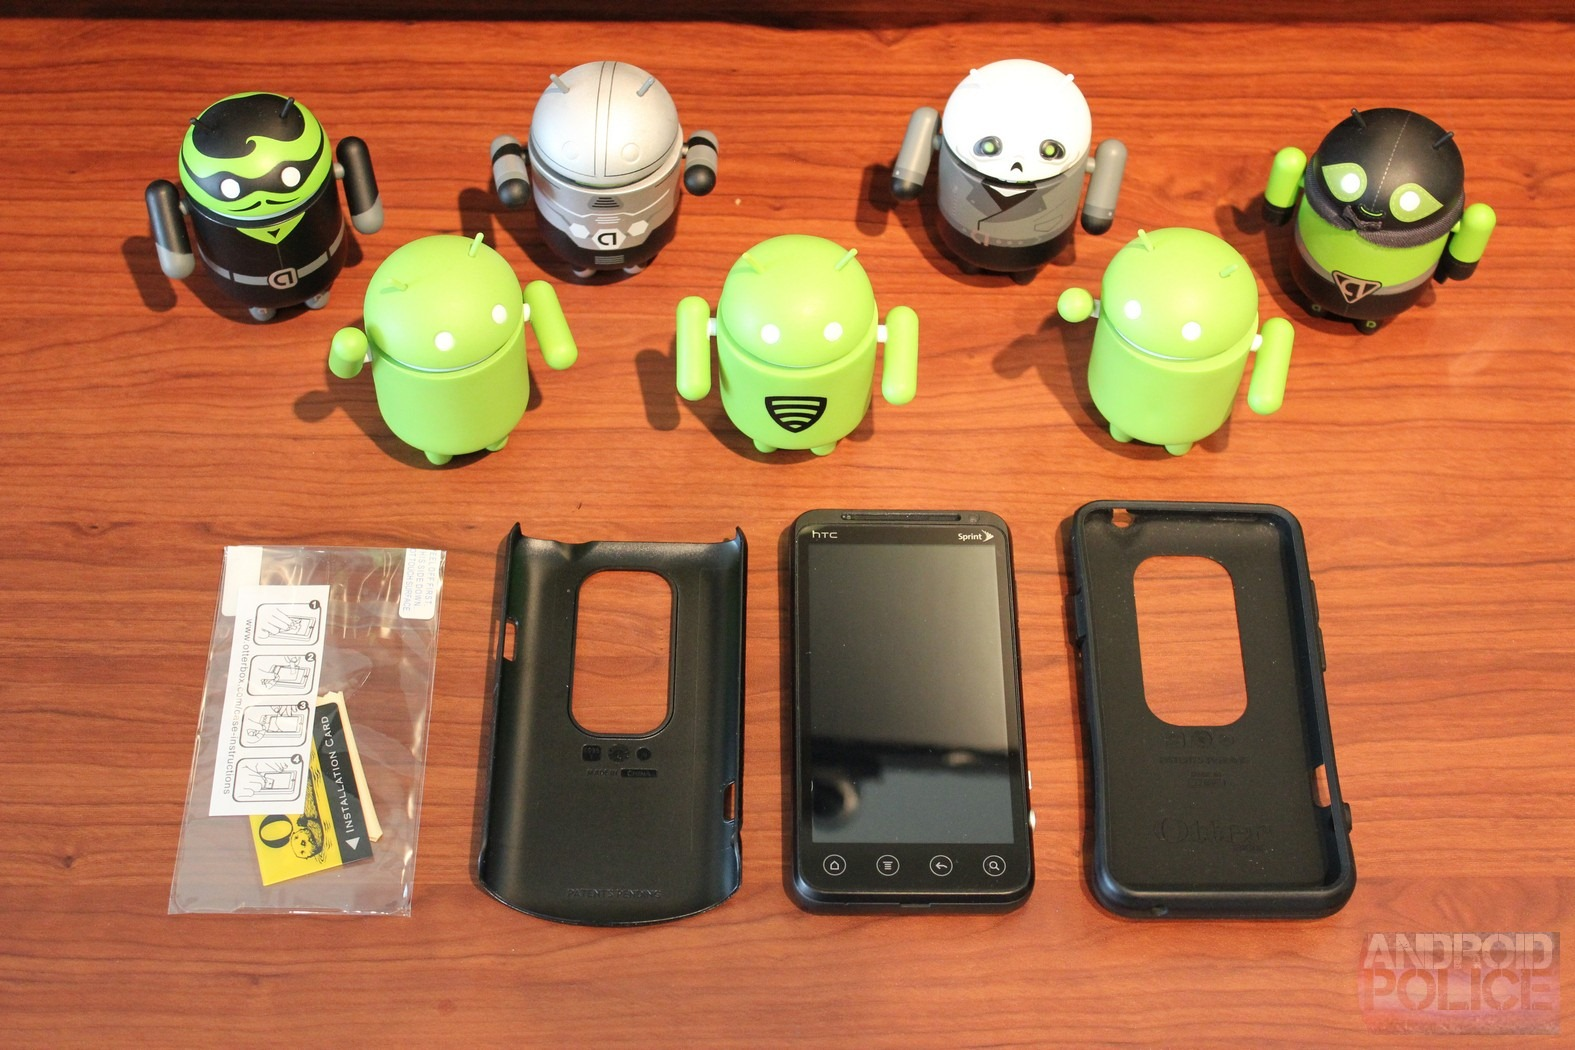 Review And Comparison Of All Three Otterbox Cases For The Evo 3d